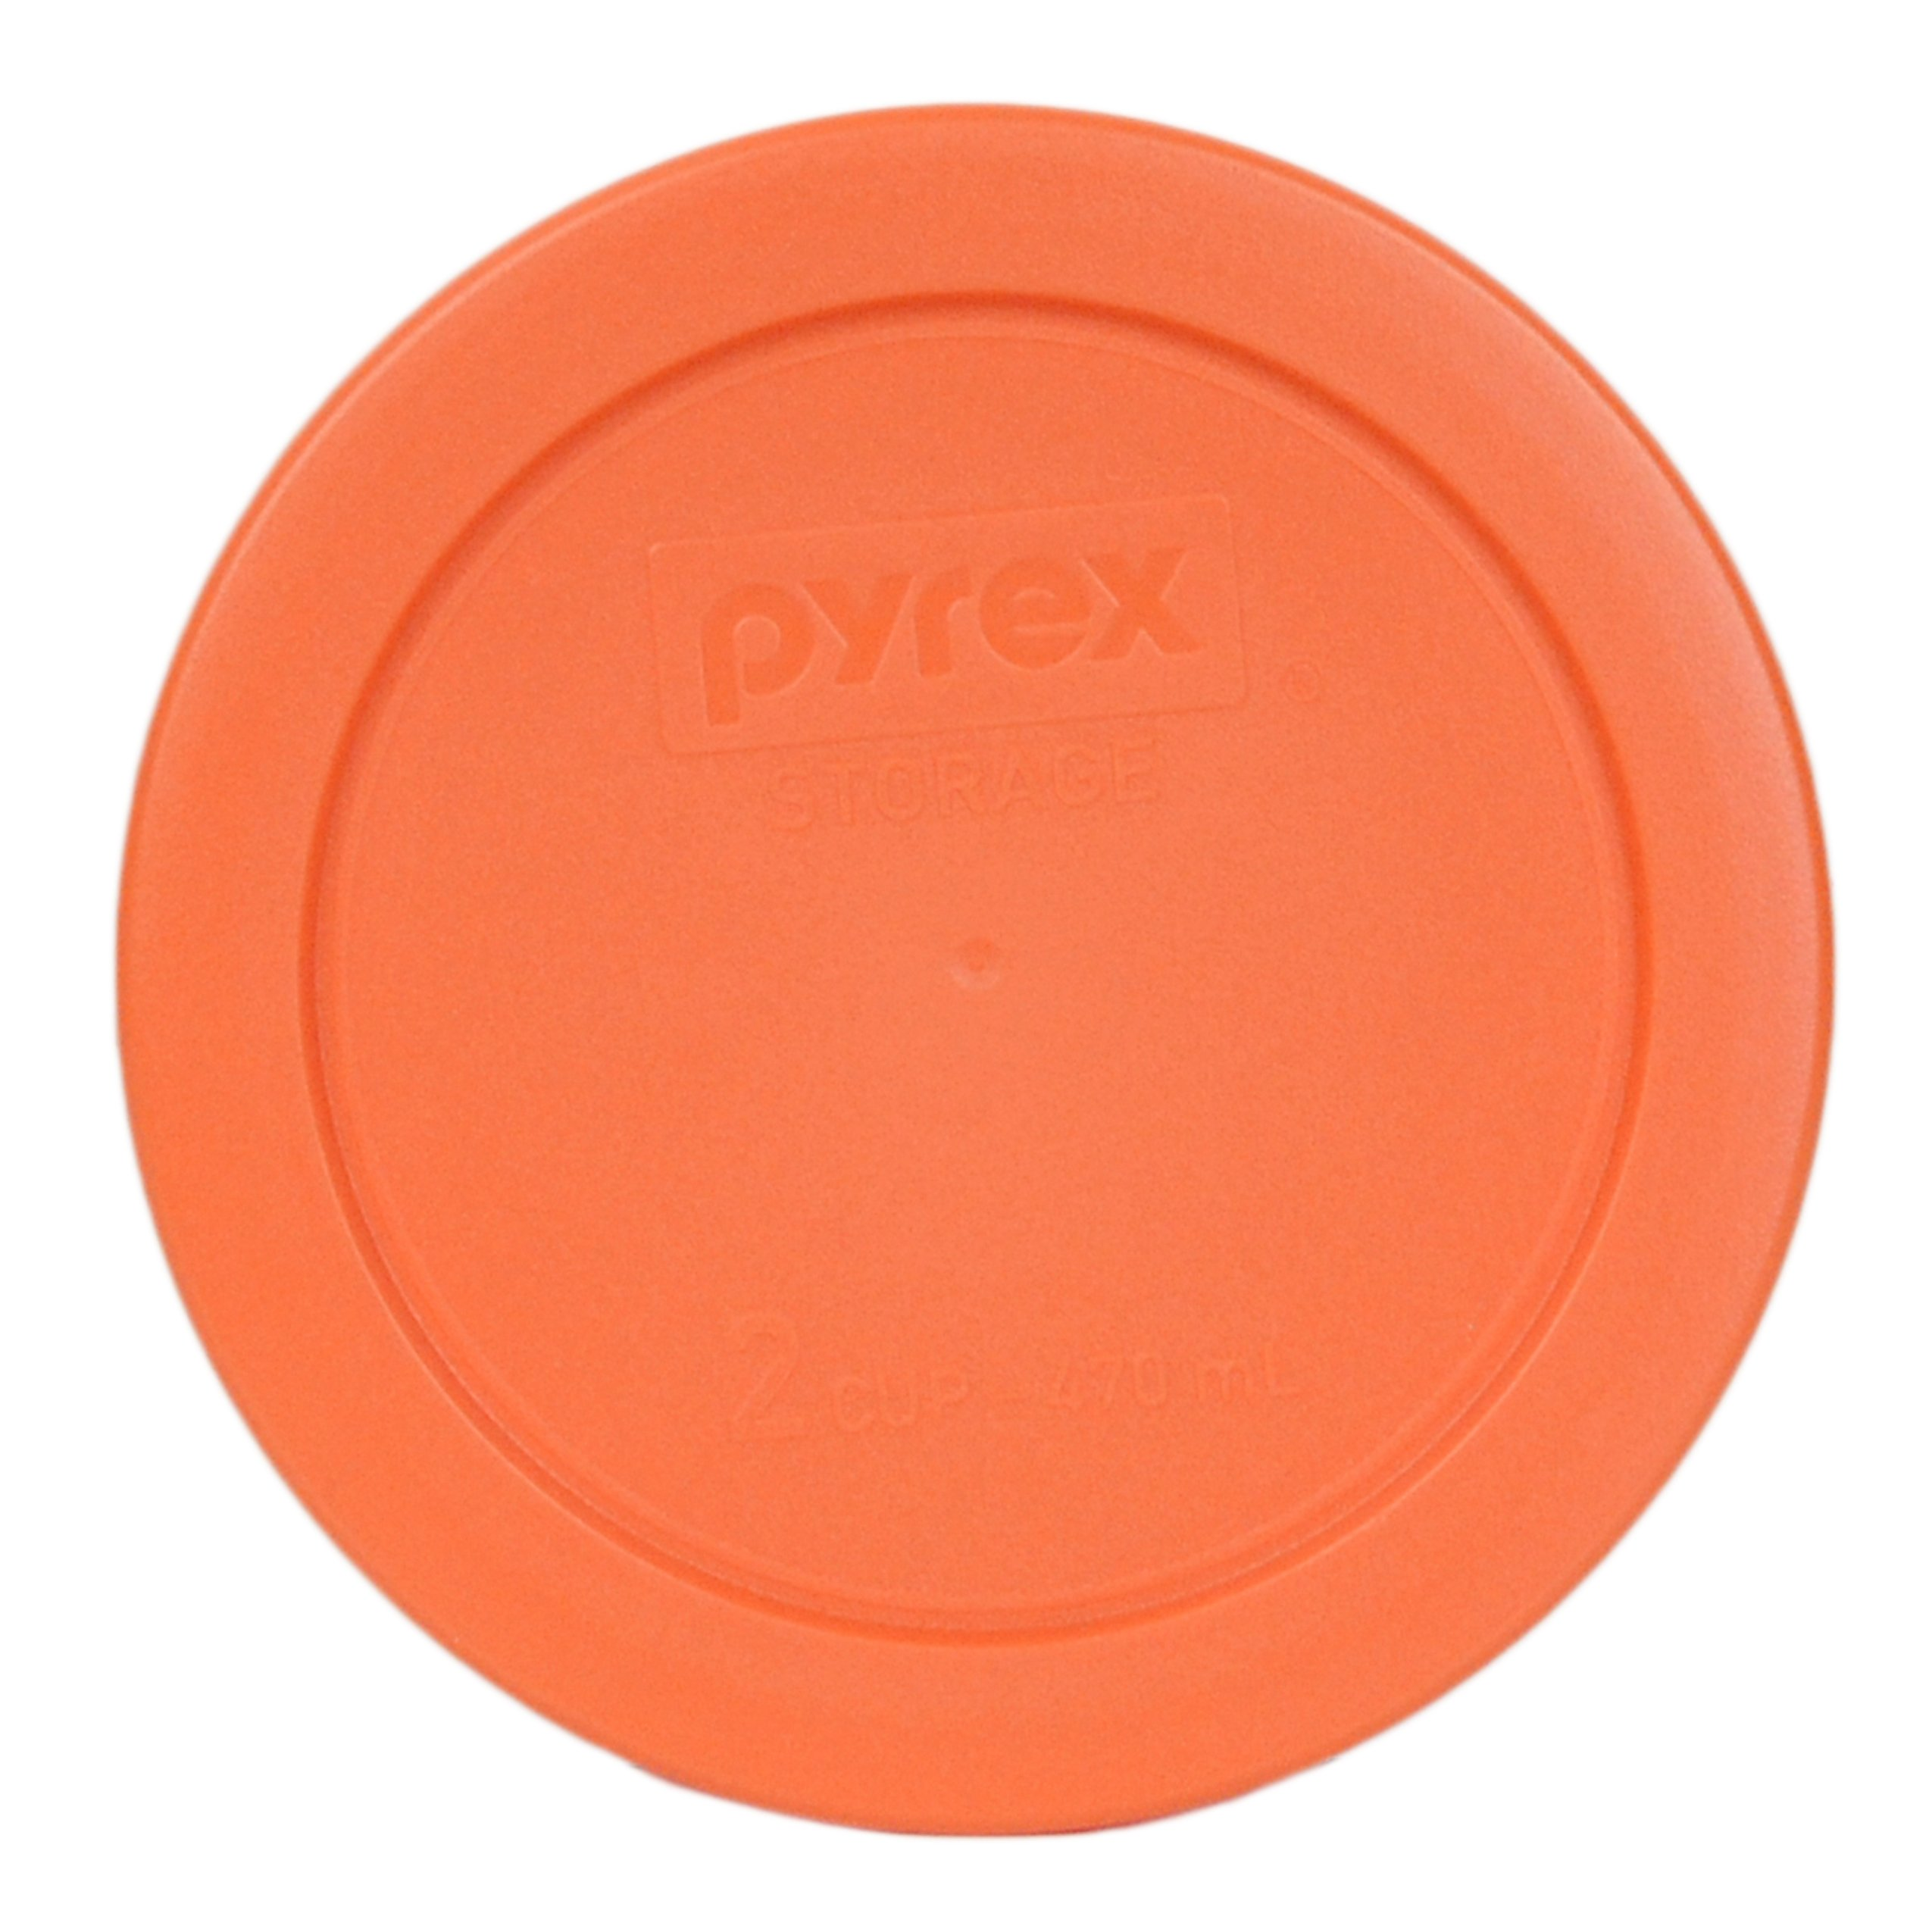 Pyrex 7200-PC Round 2 Cup Storage Lid for Glass Bowls (6, Orange) by Pyrex (Image #2)